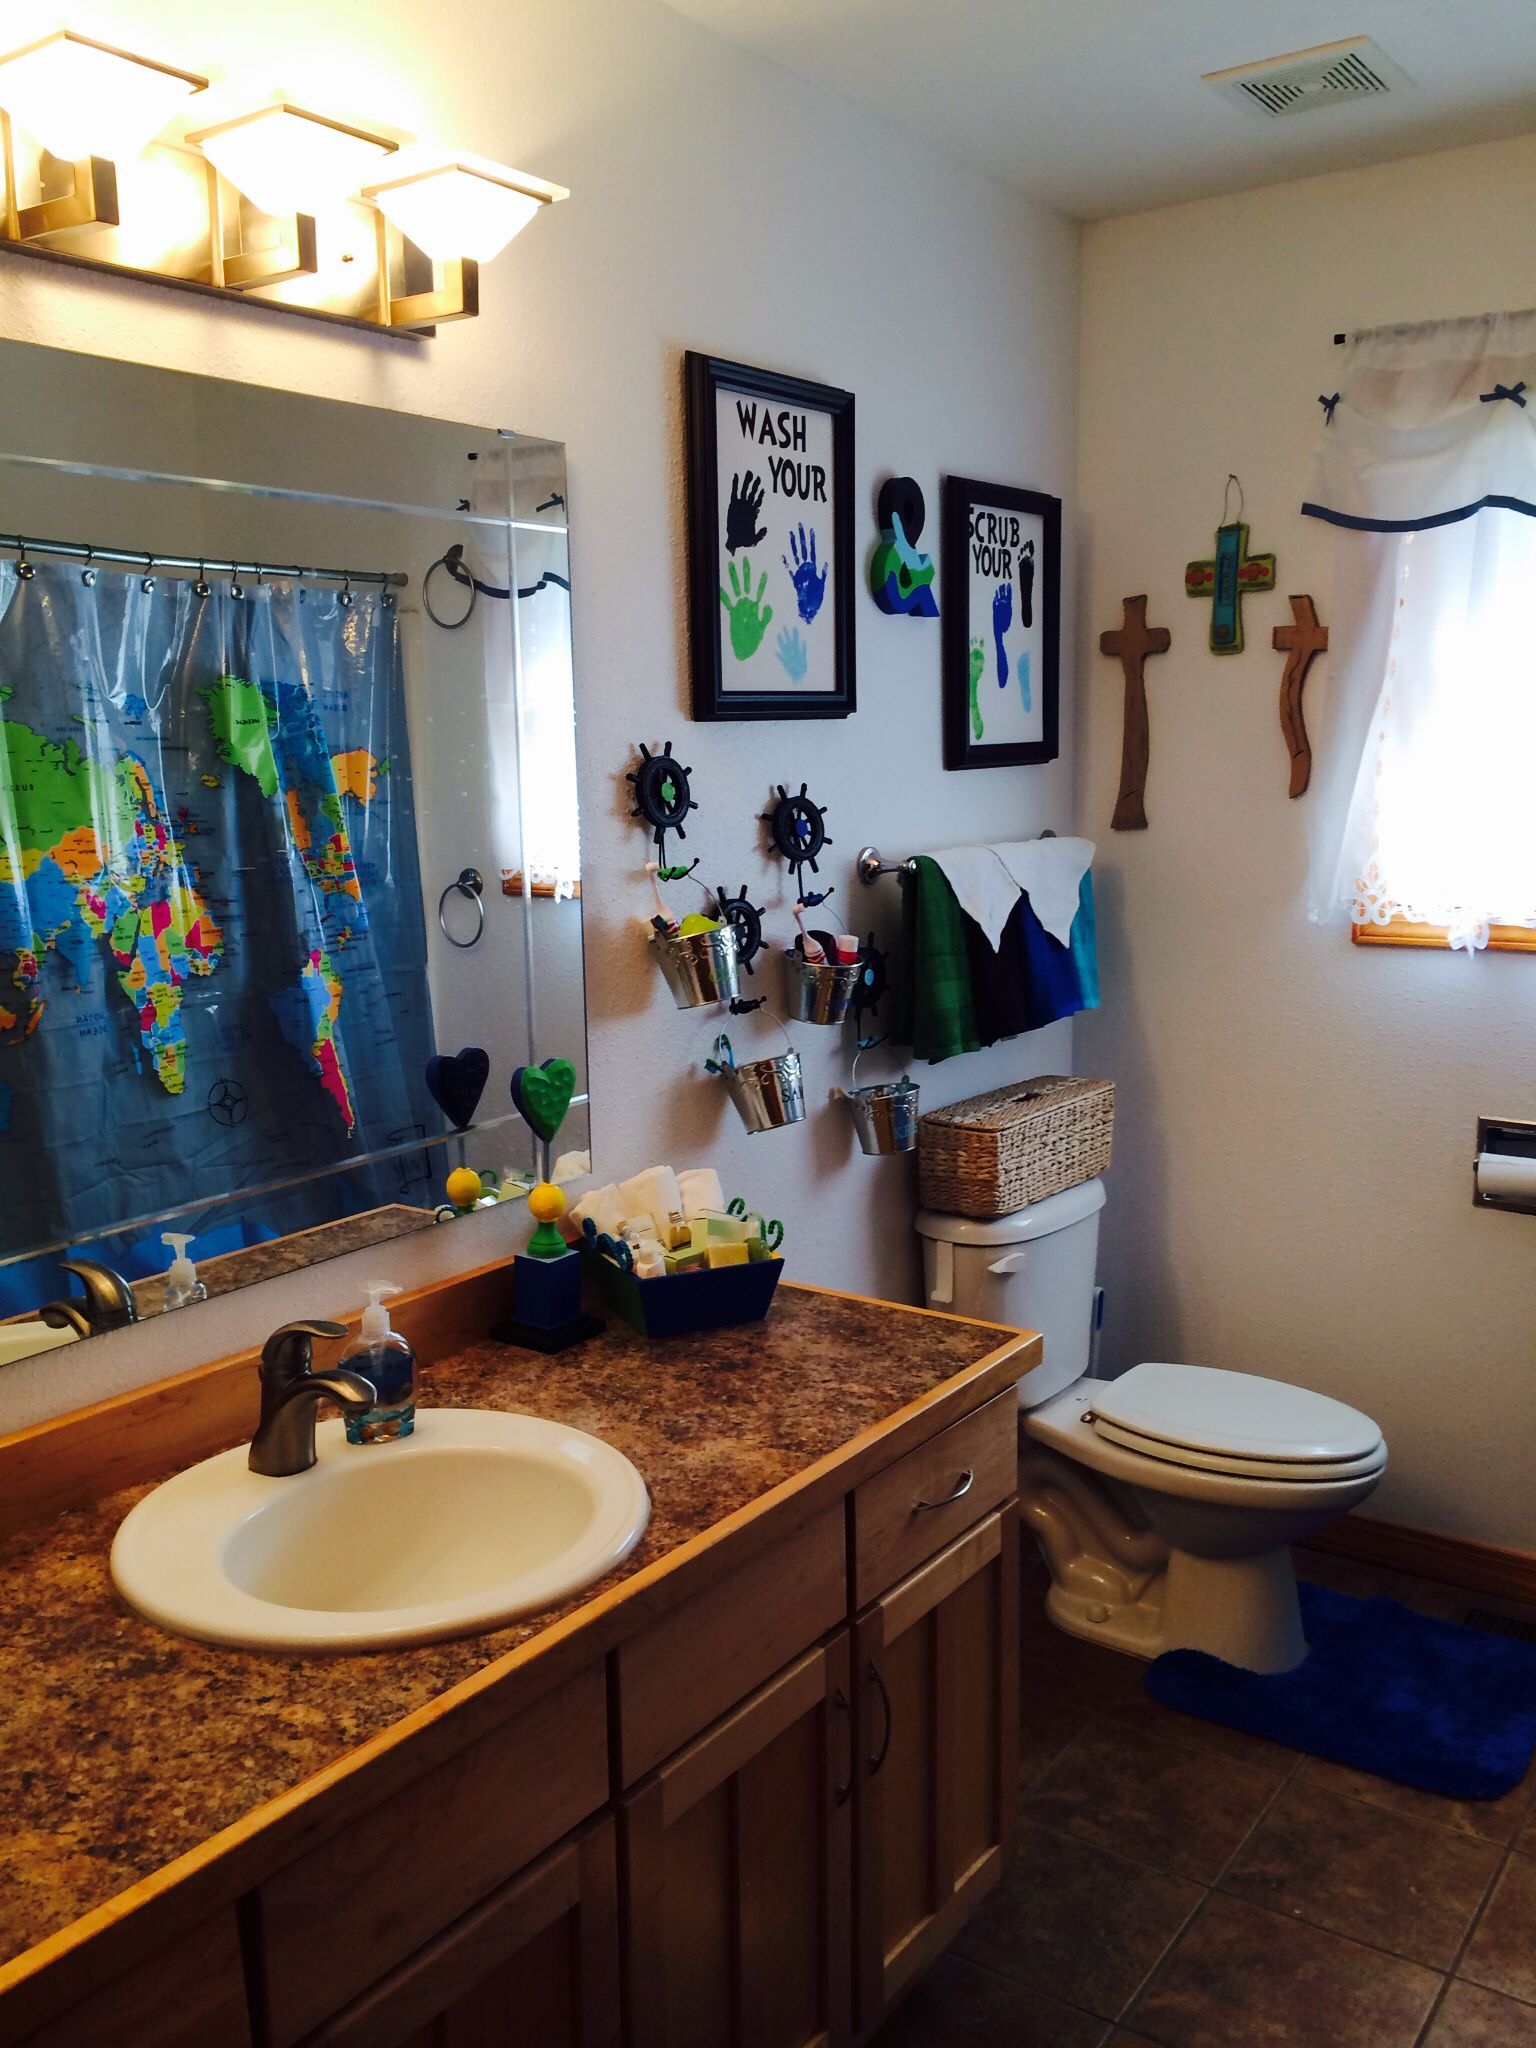 Diy Kids Bathroom Decor world map bathroom decor. kids bathroom decor. | diy | pinterest